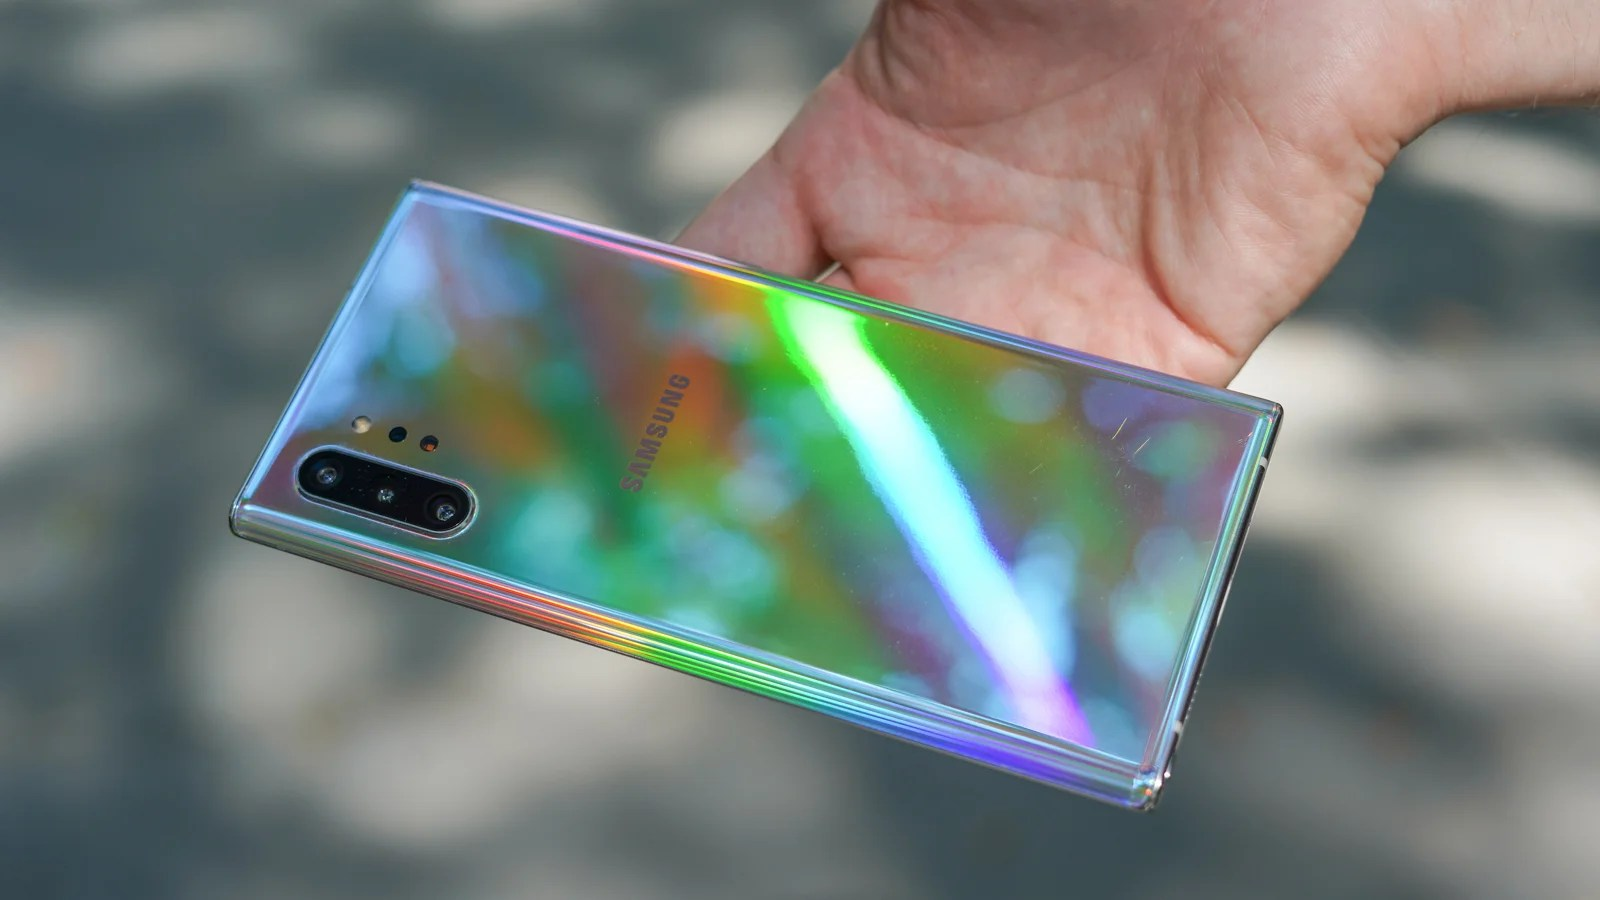 The Ultimate Do-It-All Smartphone: A Review of Samsung's Galaxy Note10+